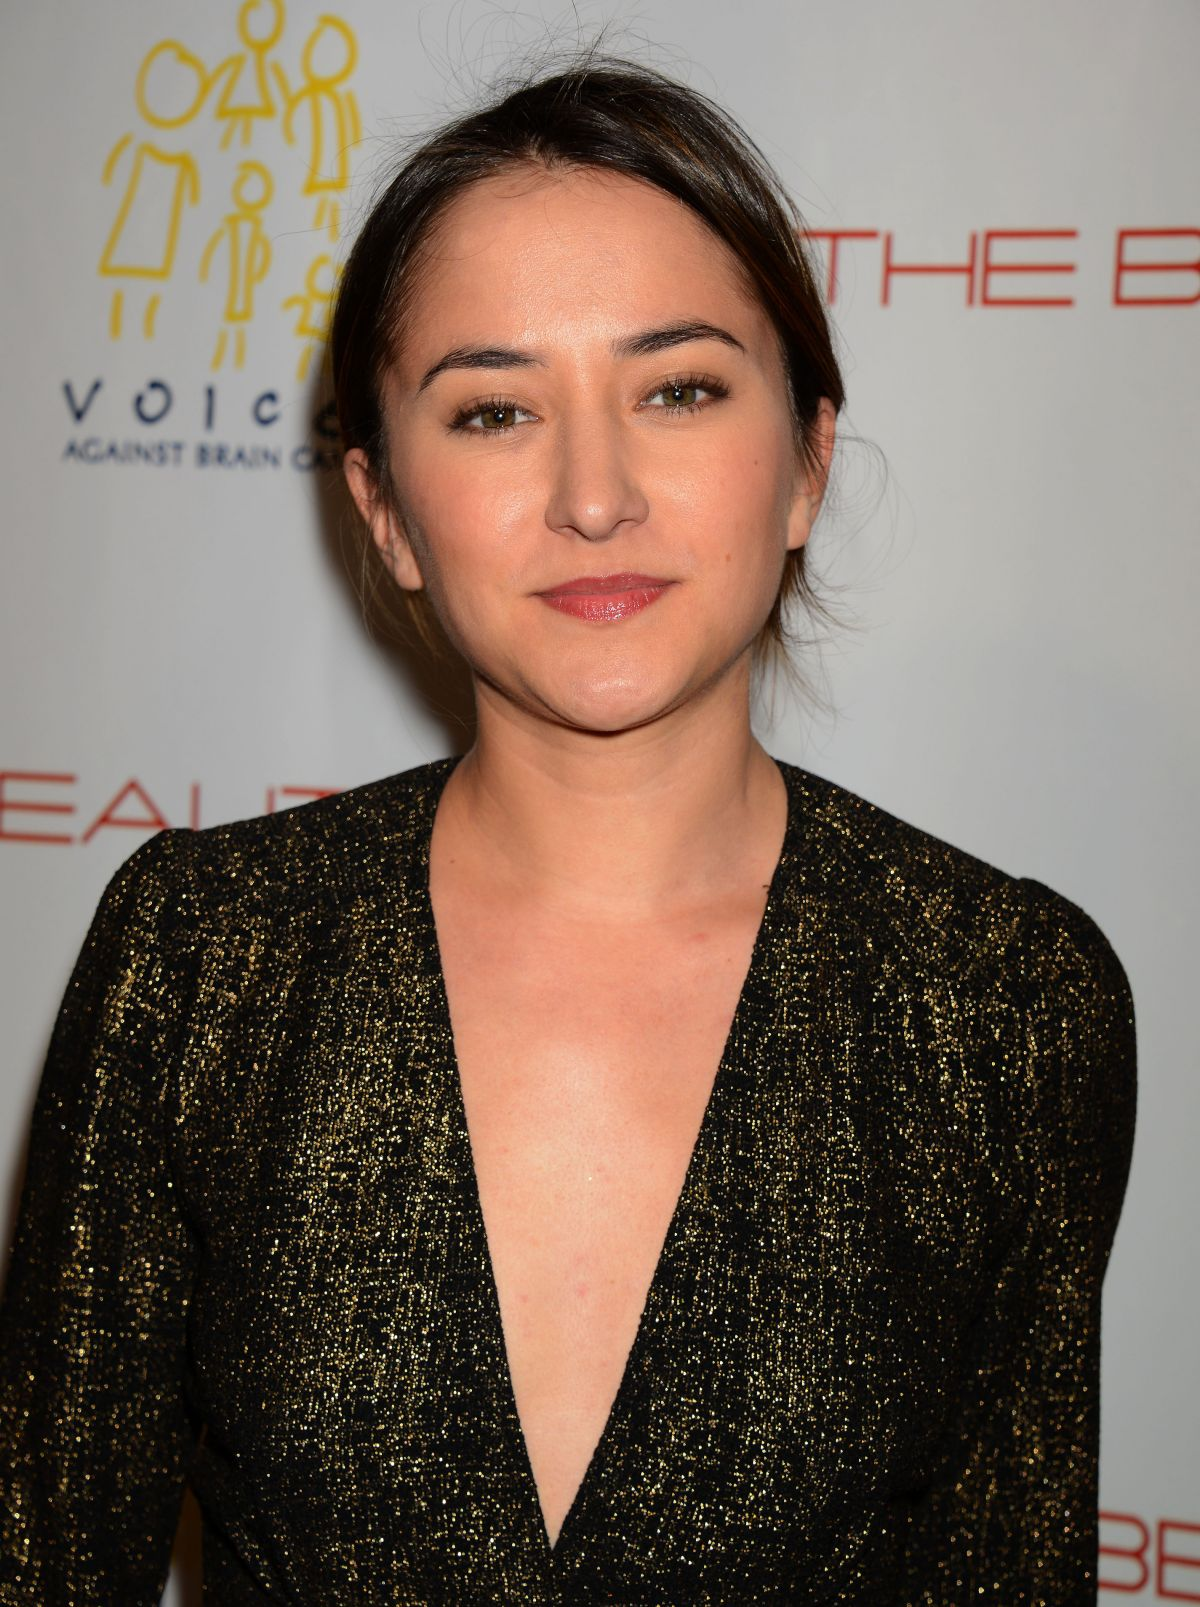 ZELDA WILLIAMS at The Beauty Book for Brain Cancer Edition2 Launch Party in Los Angeles 12 - zelda-williams-at-the-beauty-book-for-brain-cancer-edition2-launch-party-in-los-angeles-12-03-2015_1